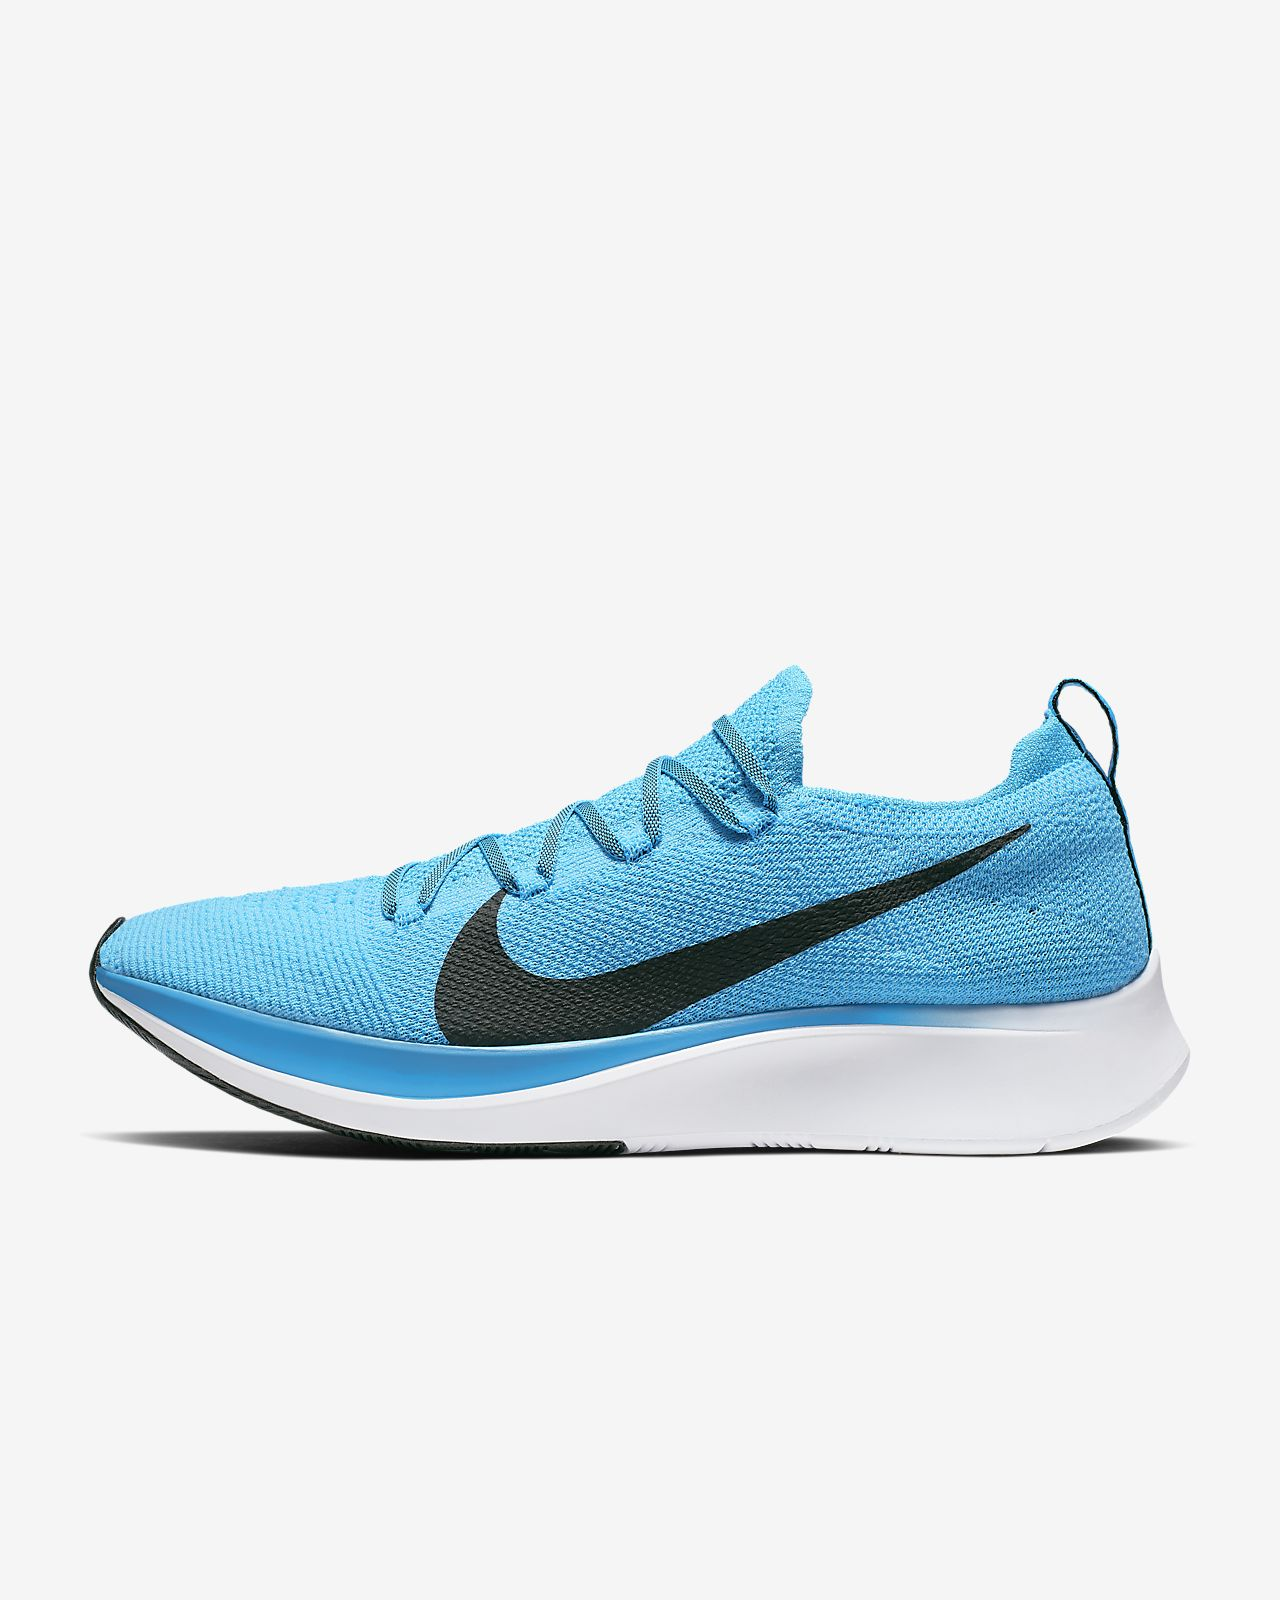 41c1f397da16 Nike Zoom Fly Flyknit Men s Running Shoe. Nike.com CA